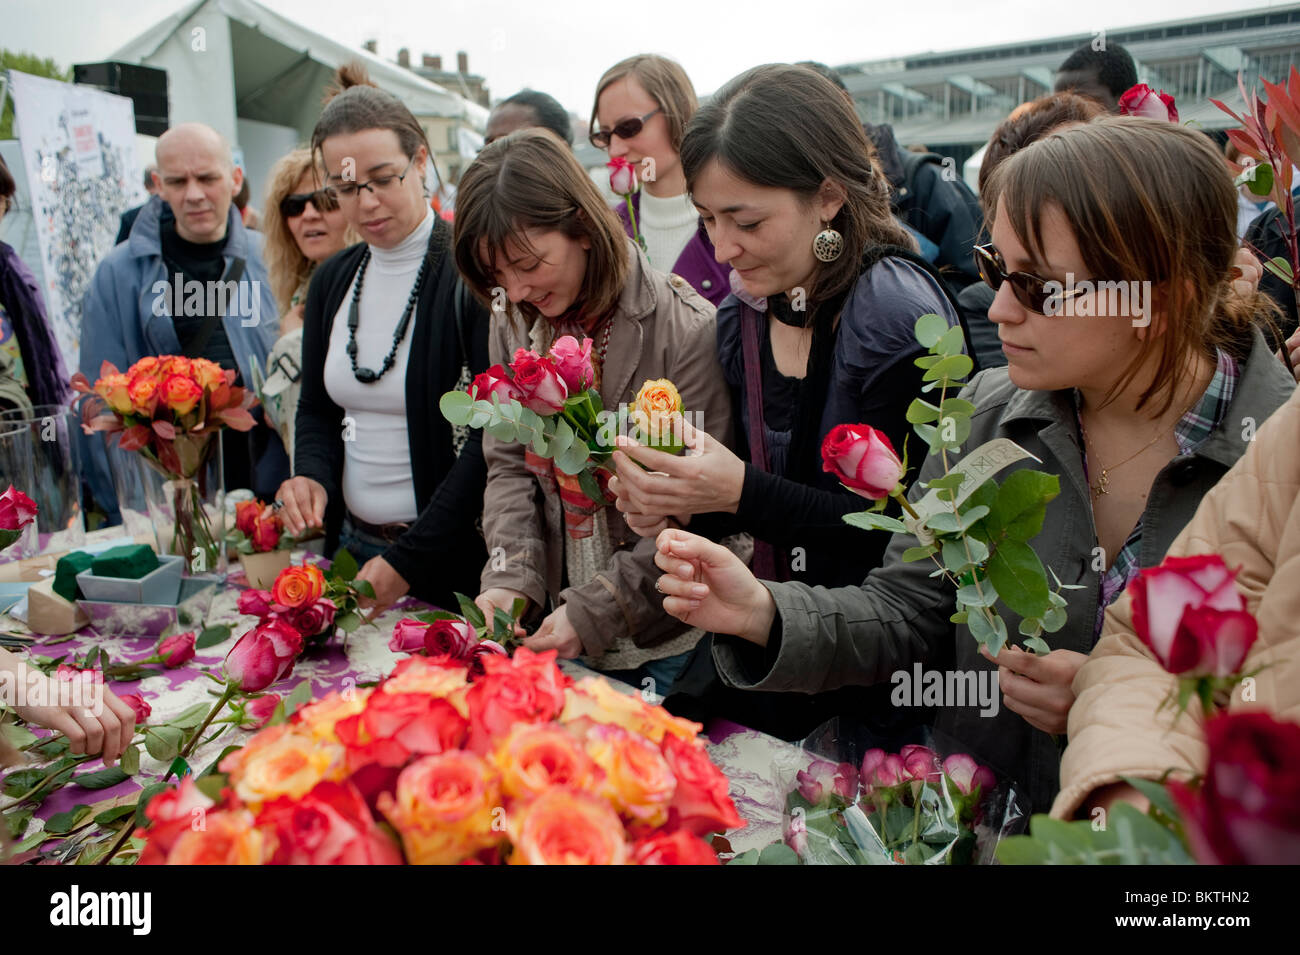 Crowd of People Taking Roses at Florist Stall at Celebration of World 'Fair Trade' Day, La Villette Park, - Stock Image